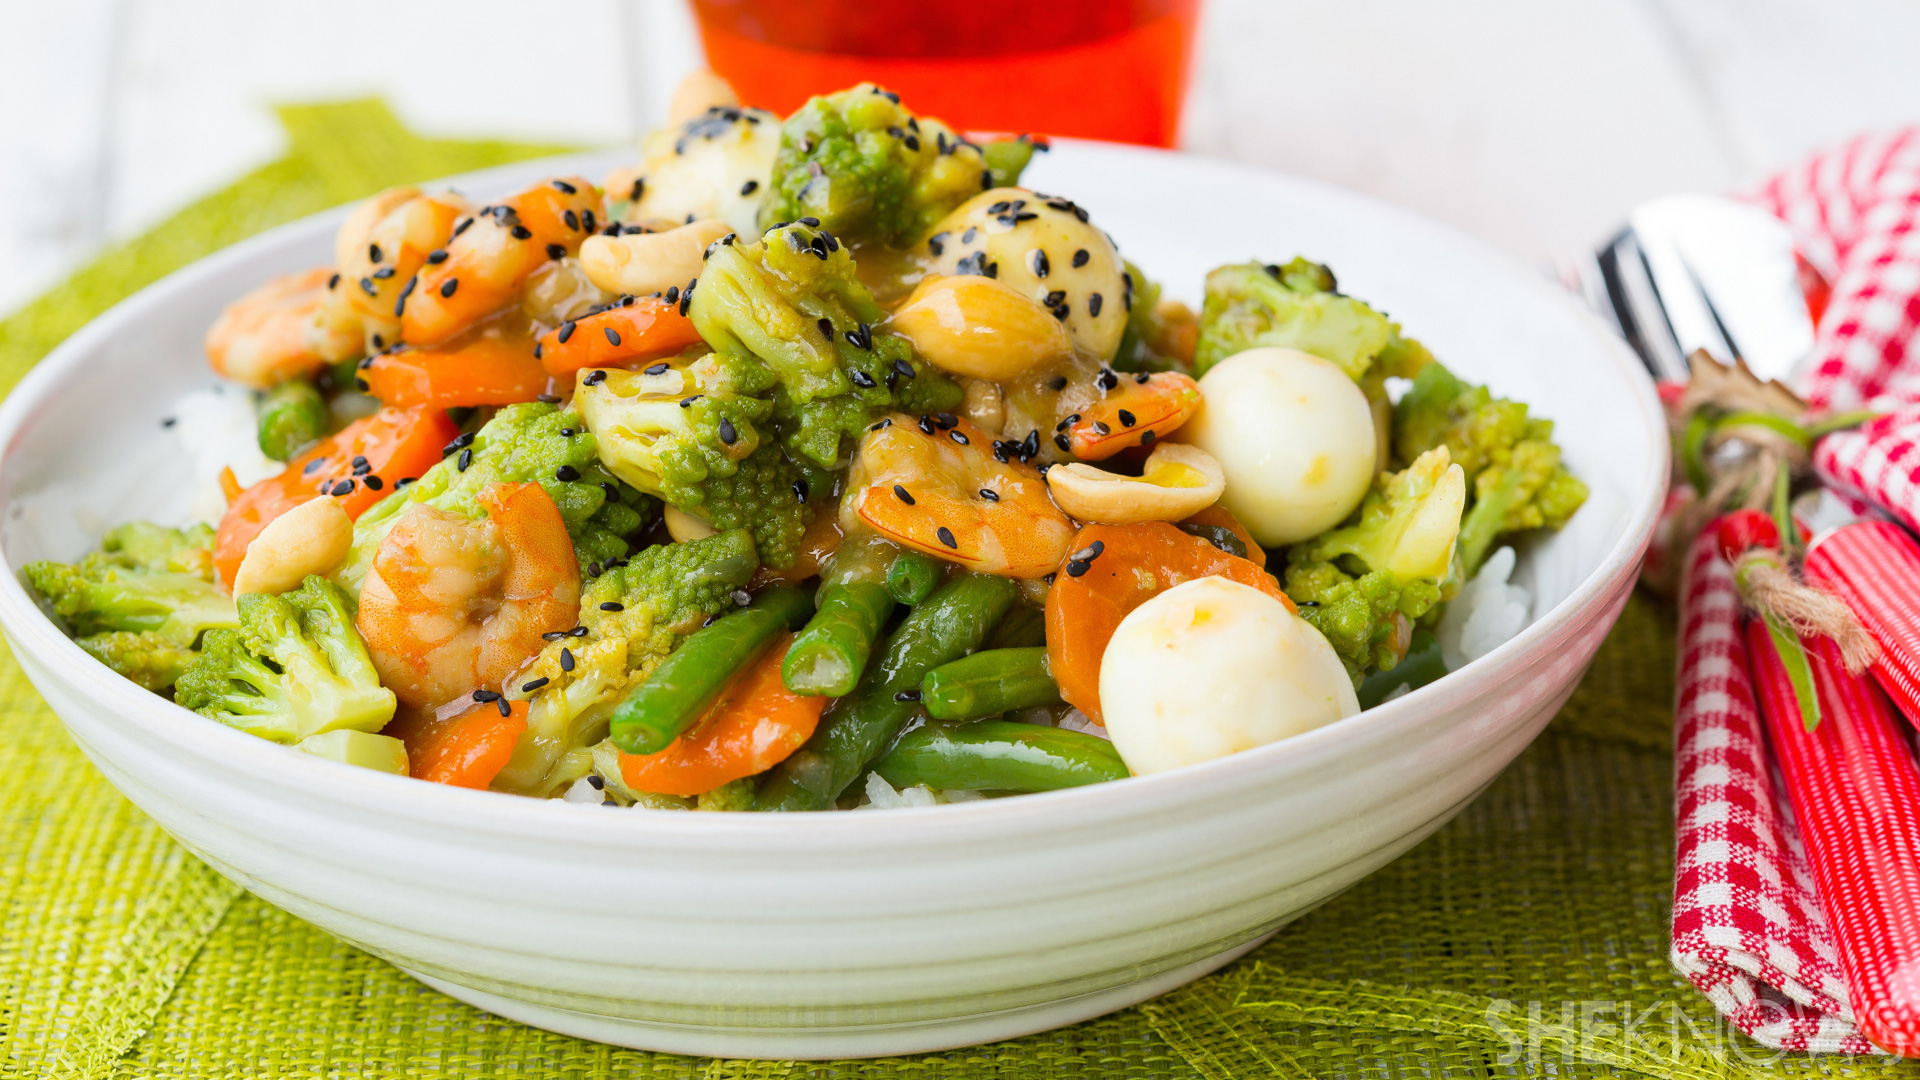 Vegetable stir-fry in oyster sauce with shrimp, quail eggs & cashew recipe